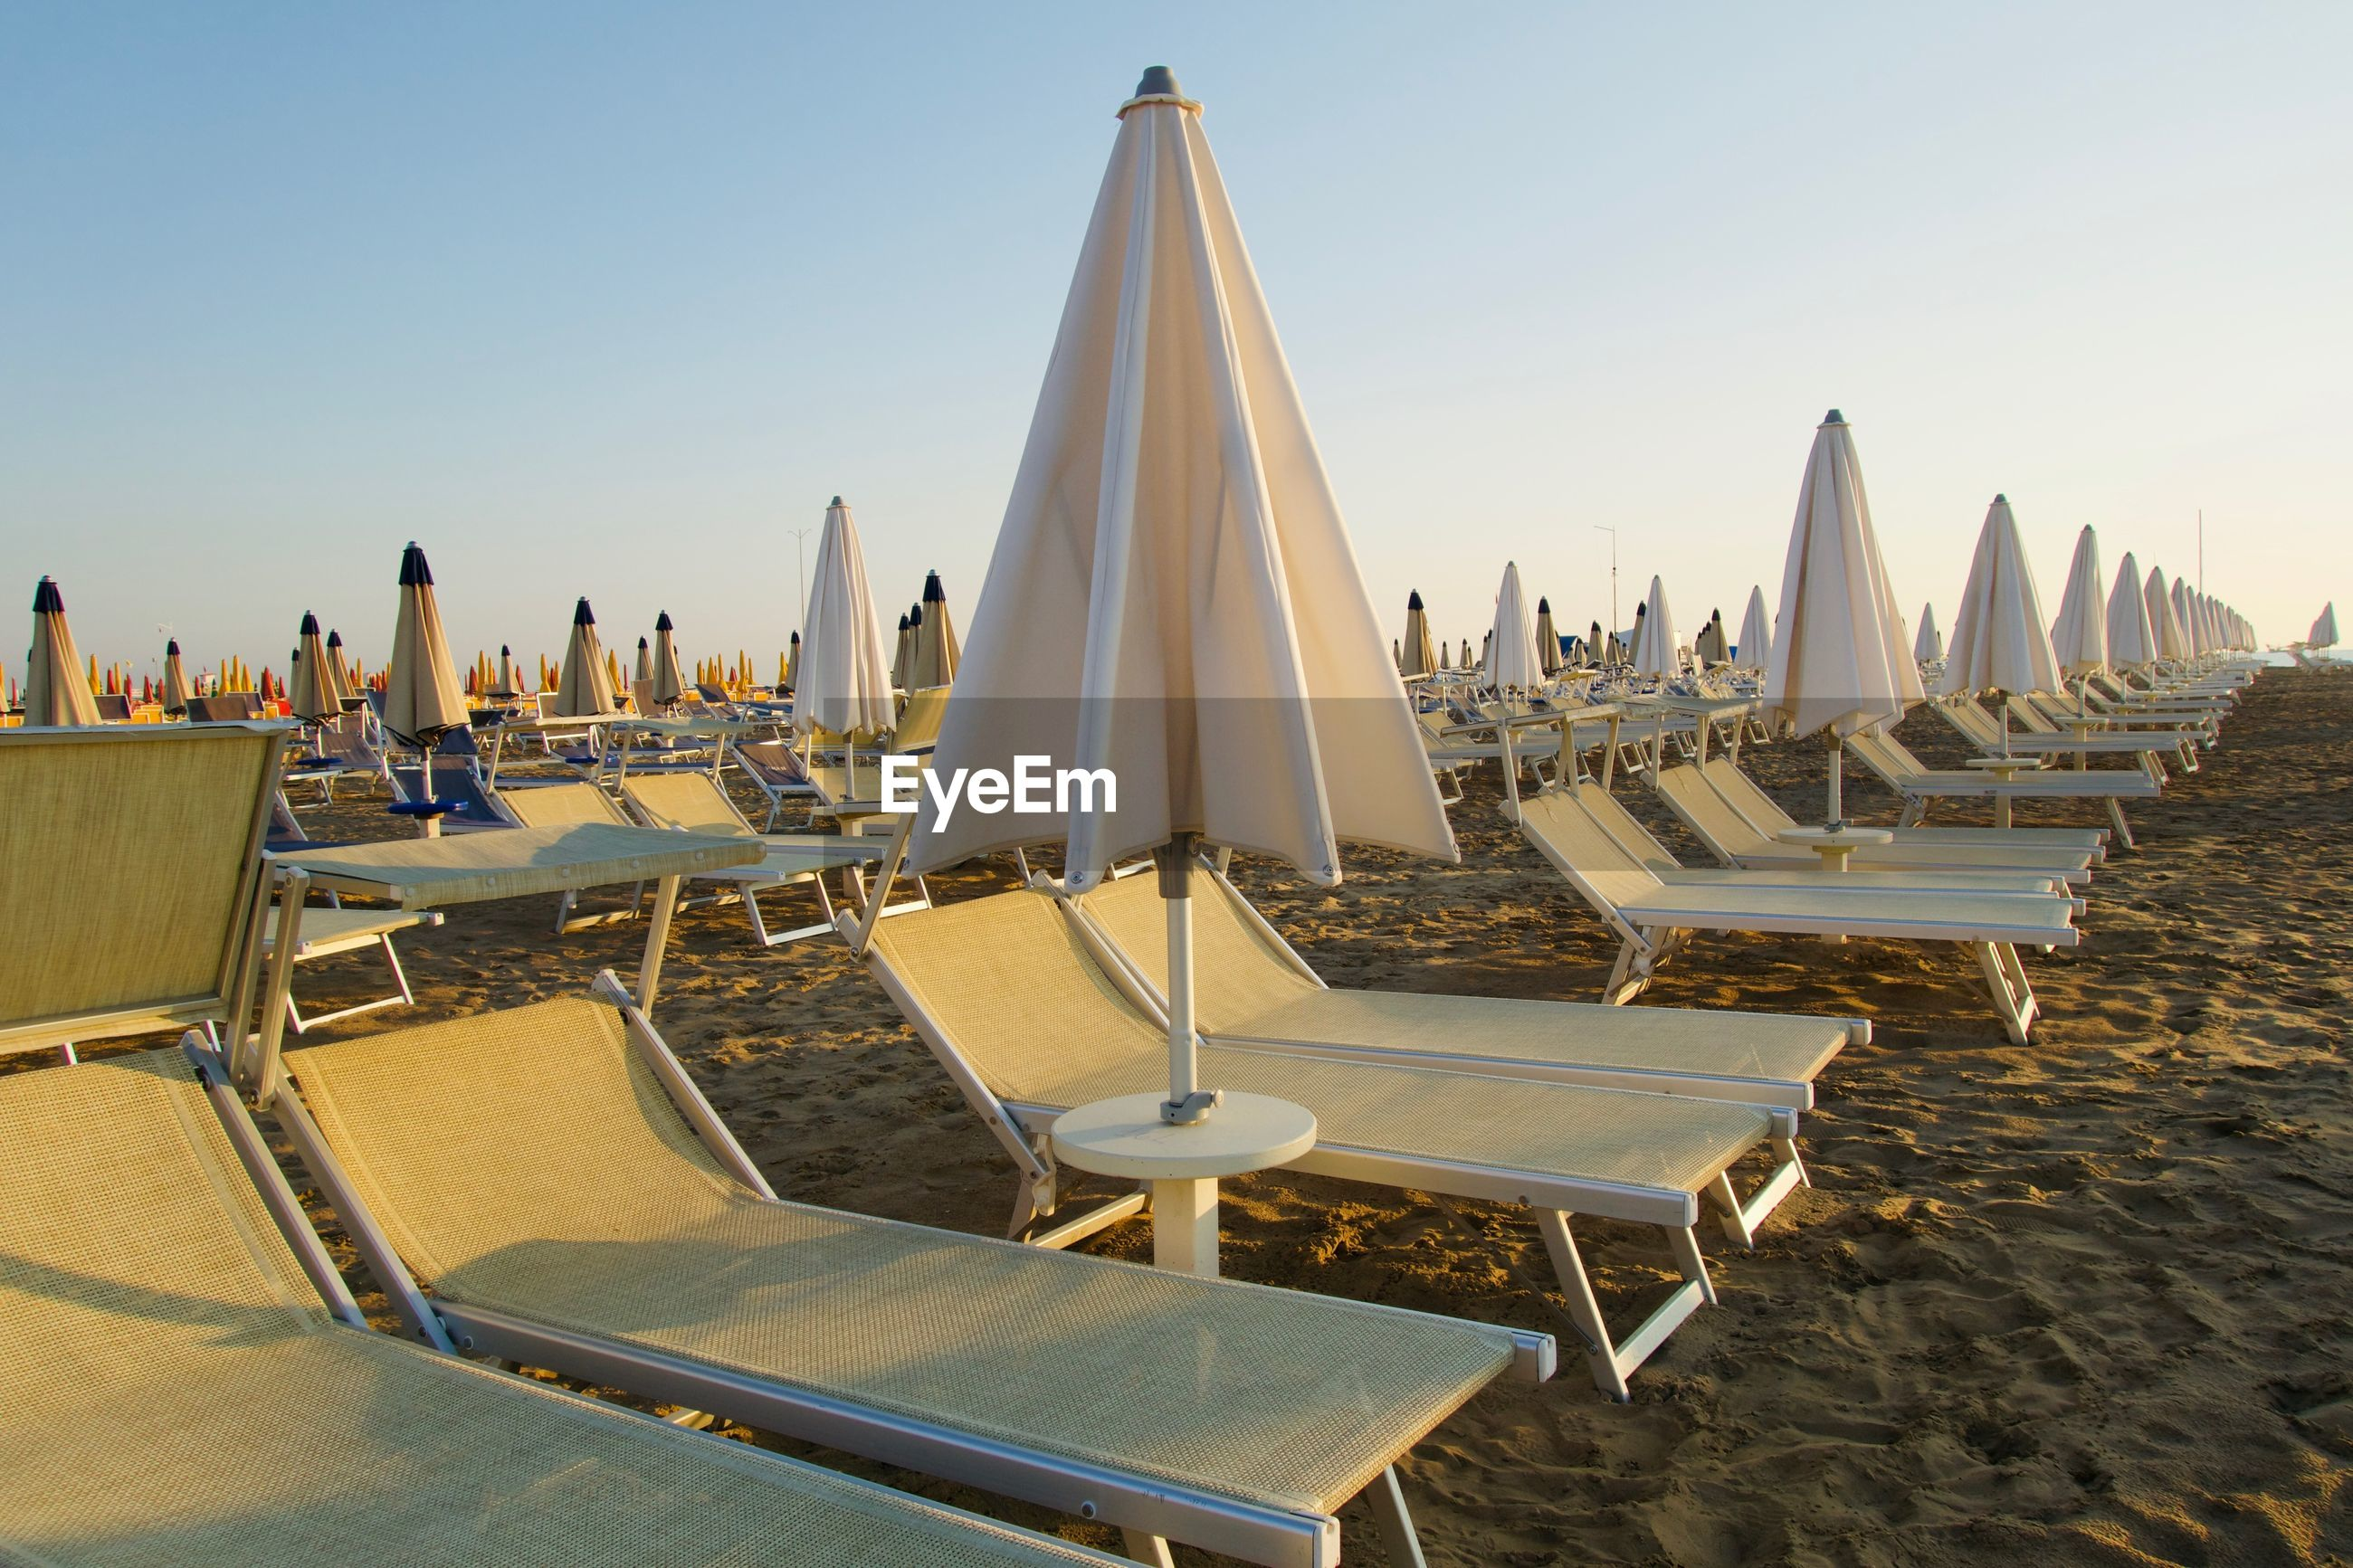 Panoramic view of lounge chairs and umbrellas on beach against clear sky